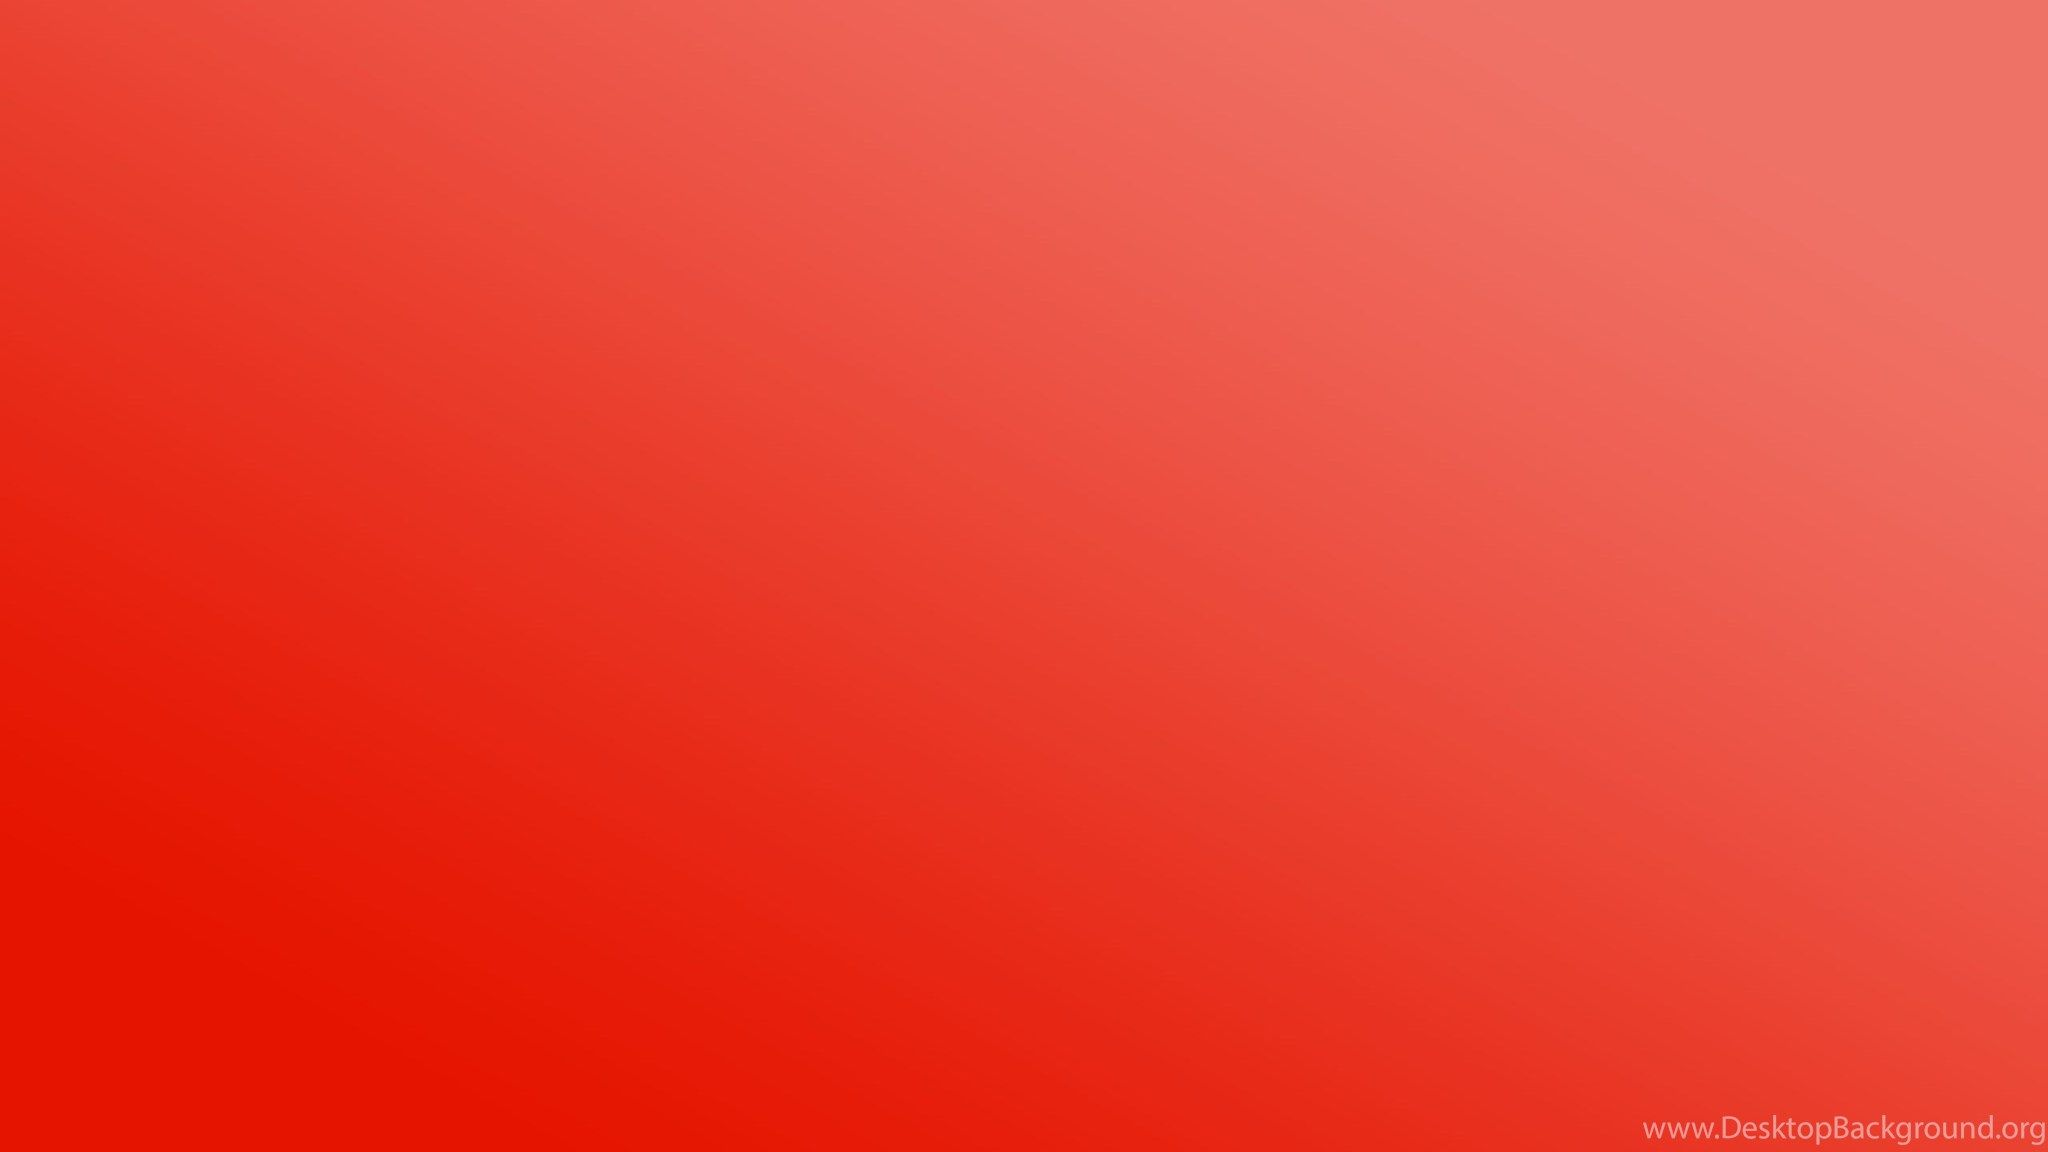 2048x1152 Top Wallpapers Red Solid Wallpaper Images For Pinterest ...